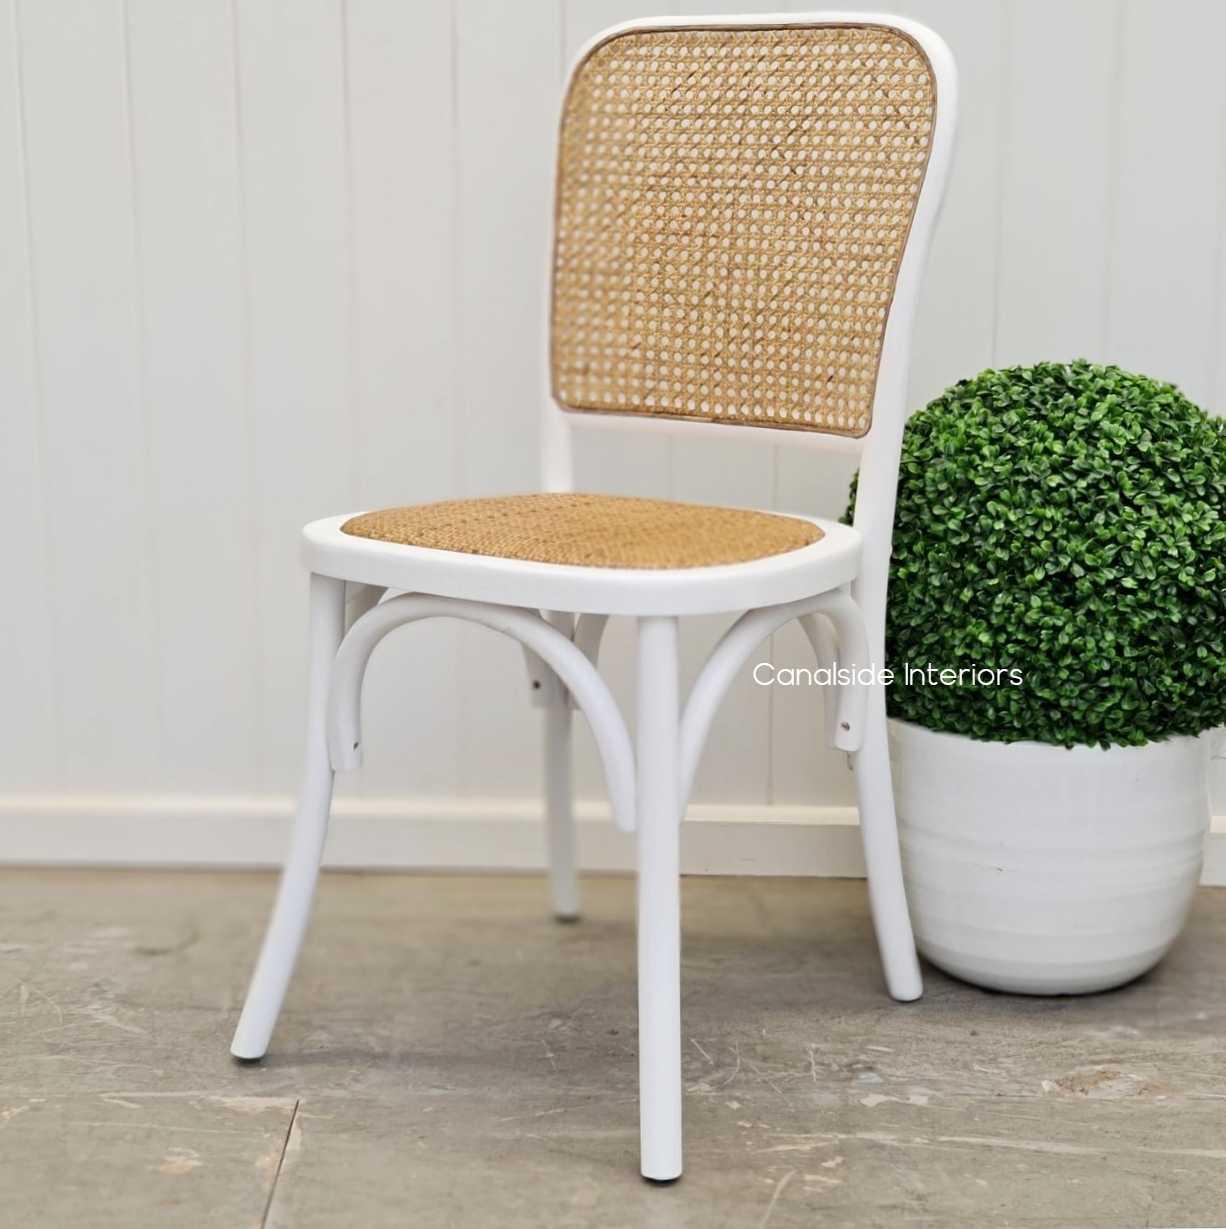 Saxon Bentwood Chair Distressed White  Dining, CHAIRS, CAFE FURNITURE, HAMPTONS Style, PLANTATION Style, CHAIRS Dining, CAFE FURNITURE Stools & Chairs, PLANTATION STYLE